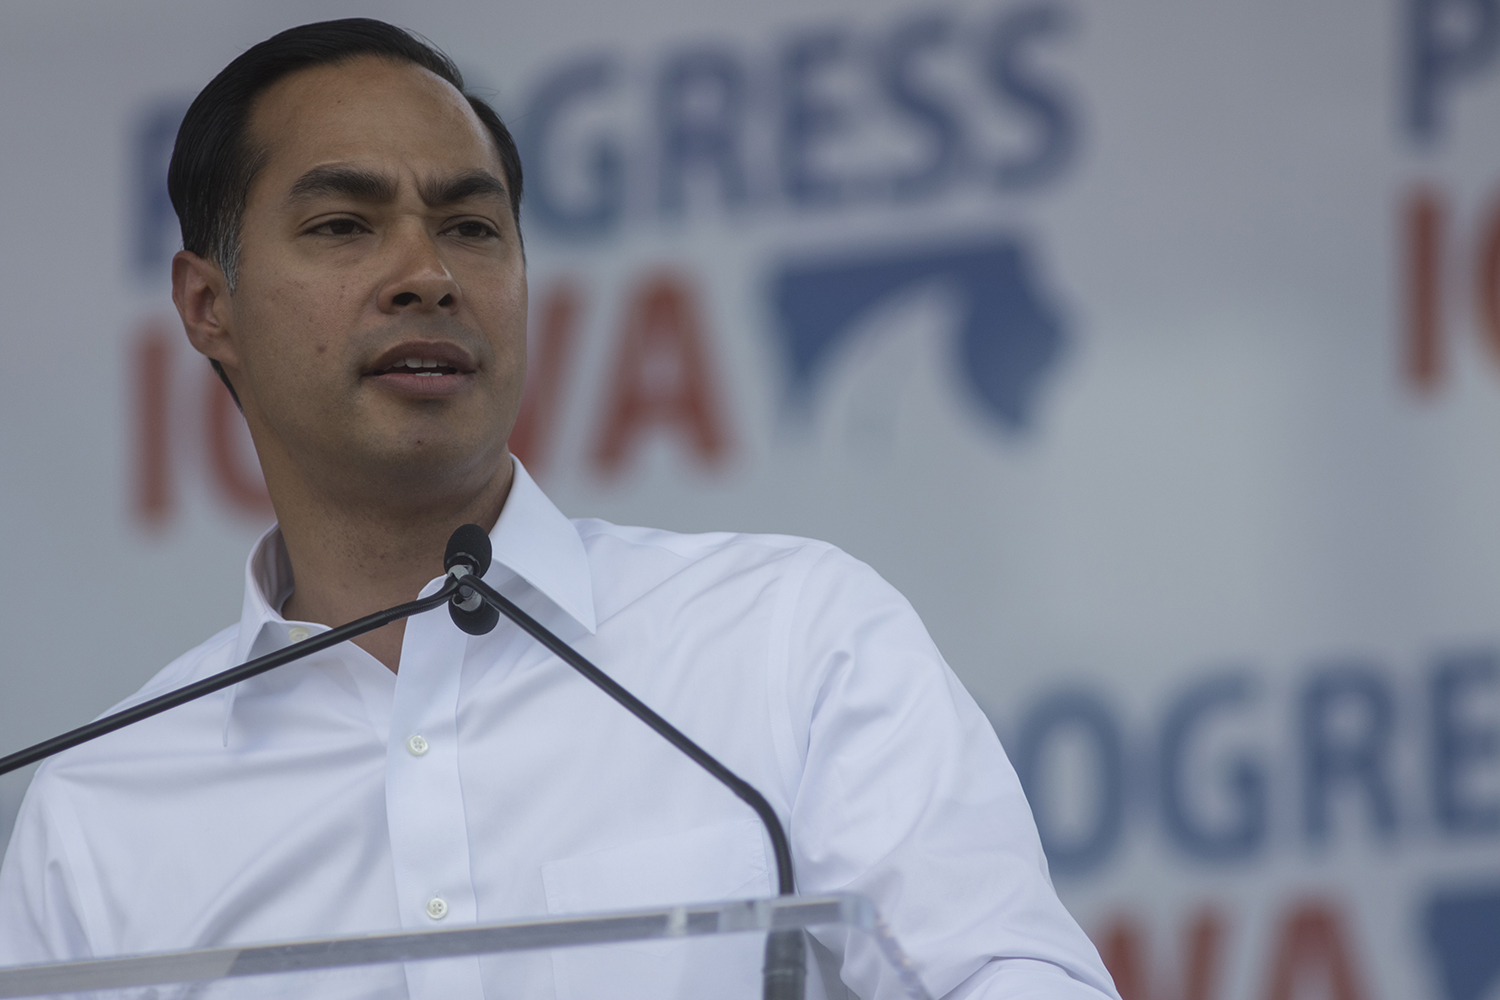 Former Secretary of Housing and Urban Development Julian Castro addresses crowds during Progress Iowa Corn Feed at The Newbo City Market in Cedar Rapids on July 14, 2019. 11 candidates came to speak with supporters and meet fans.